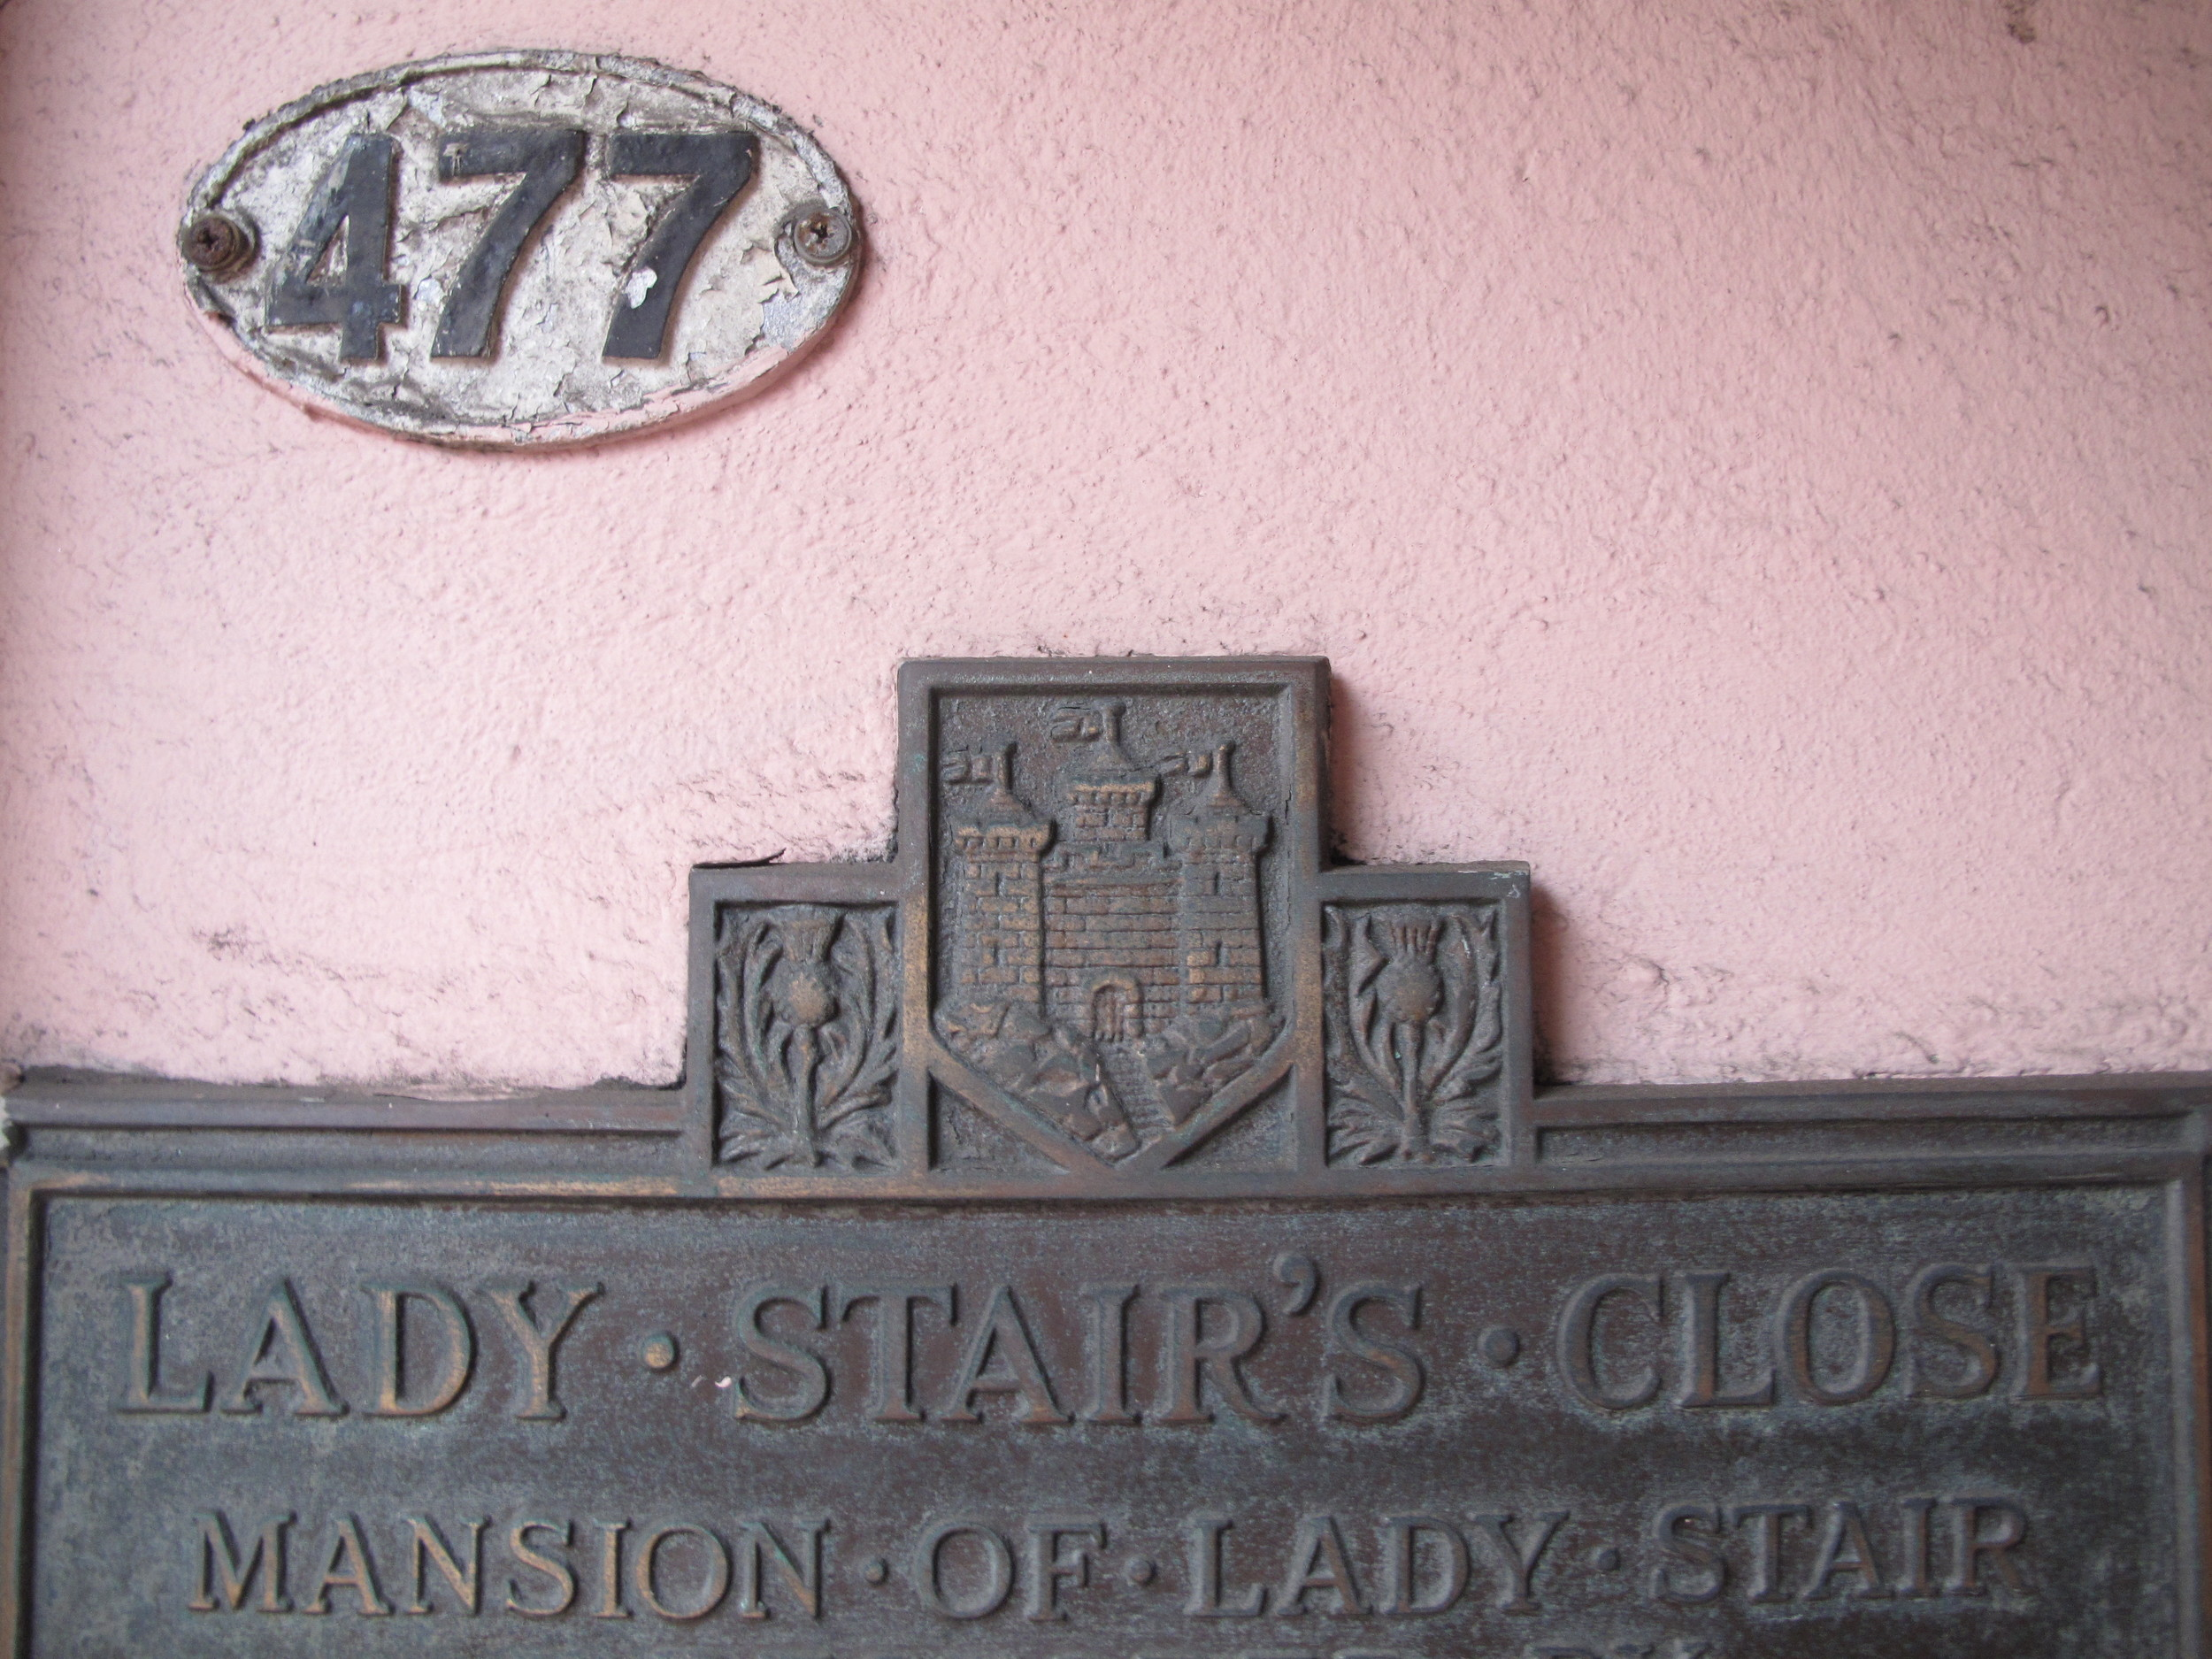 Lady Stair's Close sign on pink wall, Edinburgh.